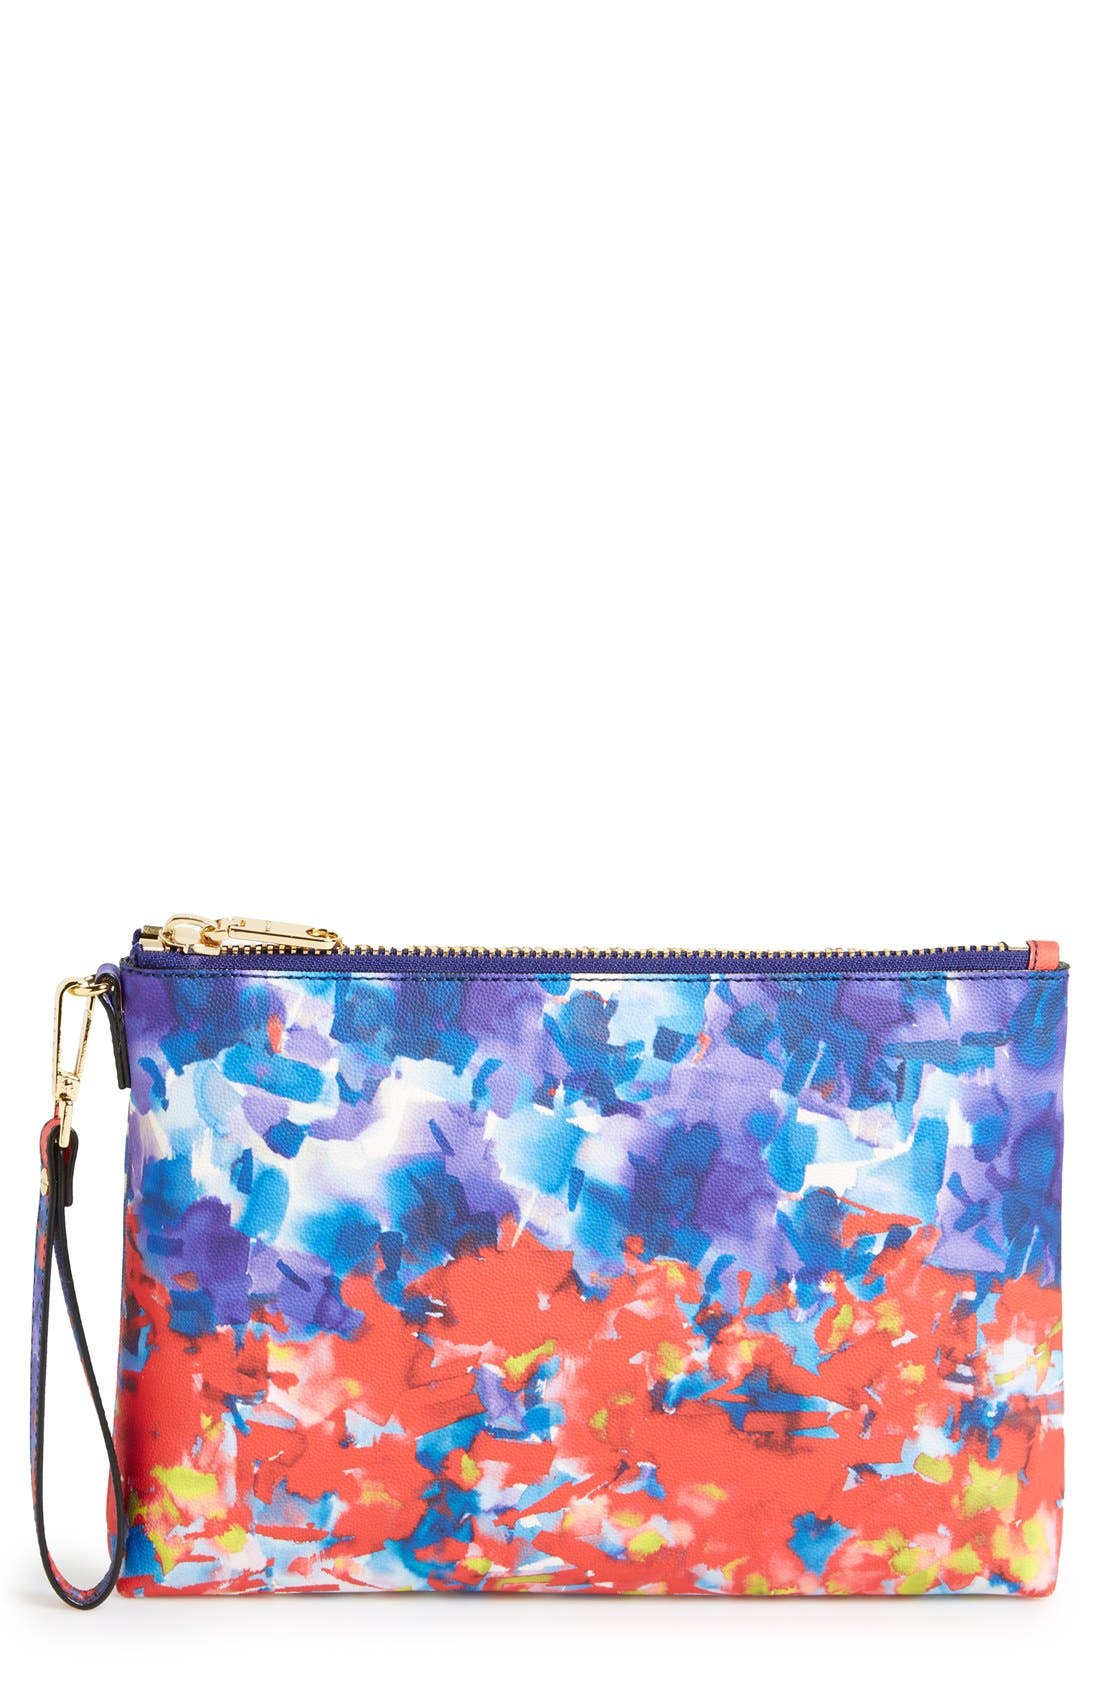 Main Image - Milly 'Watercolor' Faux Leather Wristlet Clutch